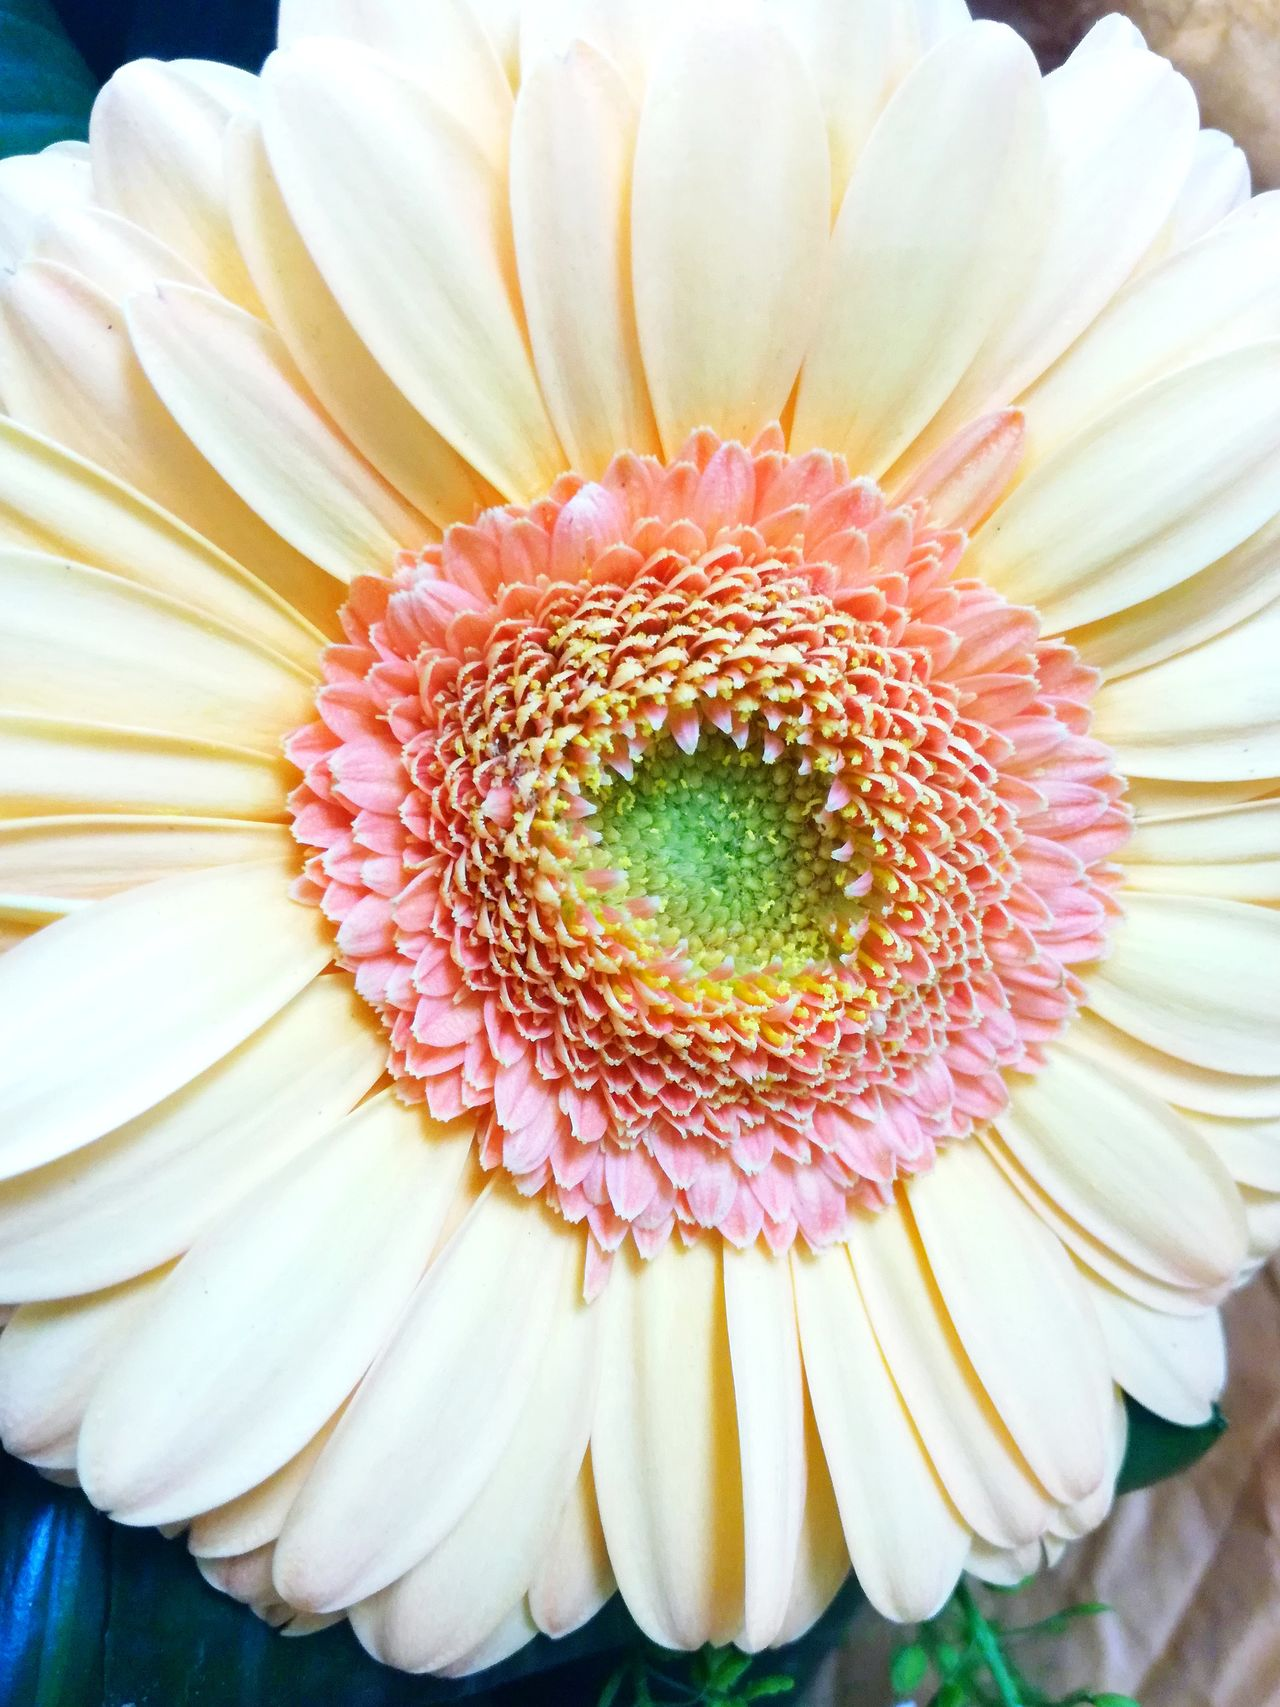 Flower Petal Flower Head Freshness Beauty In Nature Pollen Fragility No People Close-up Nature Plant Growth Day Springtime Gerbera Flower Gerberdaisy